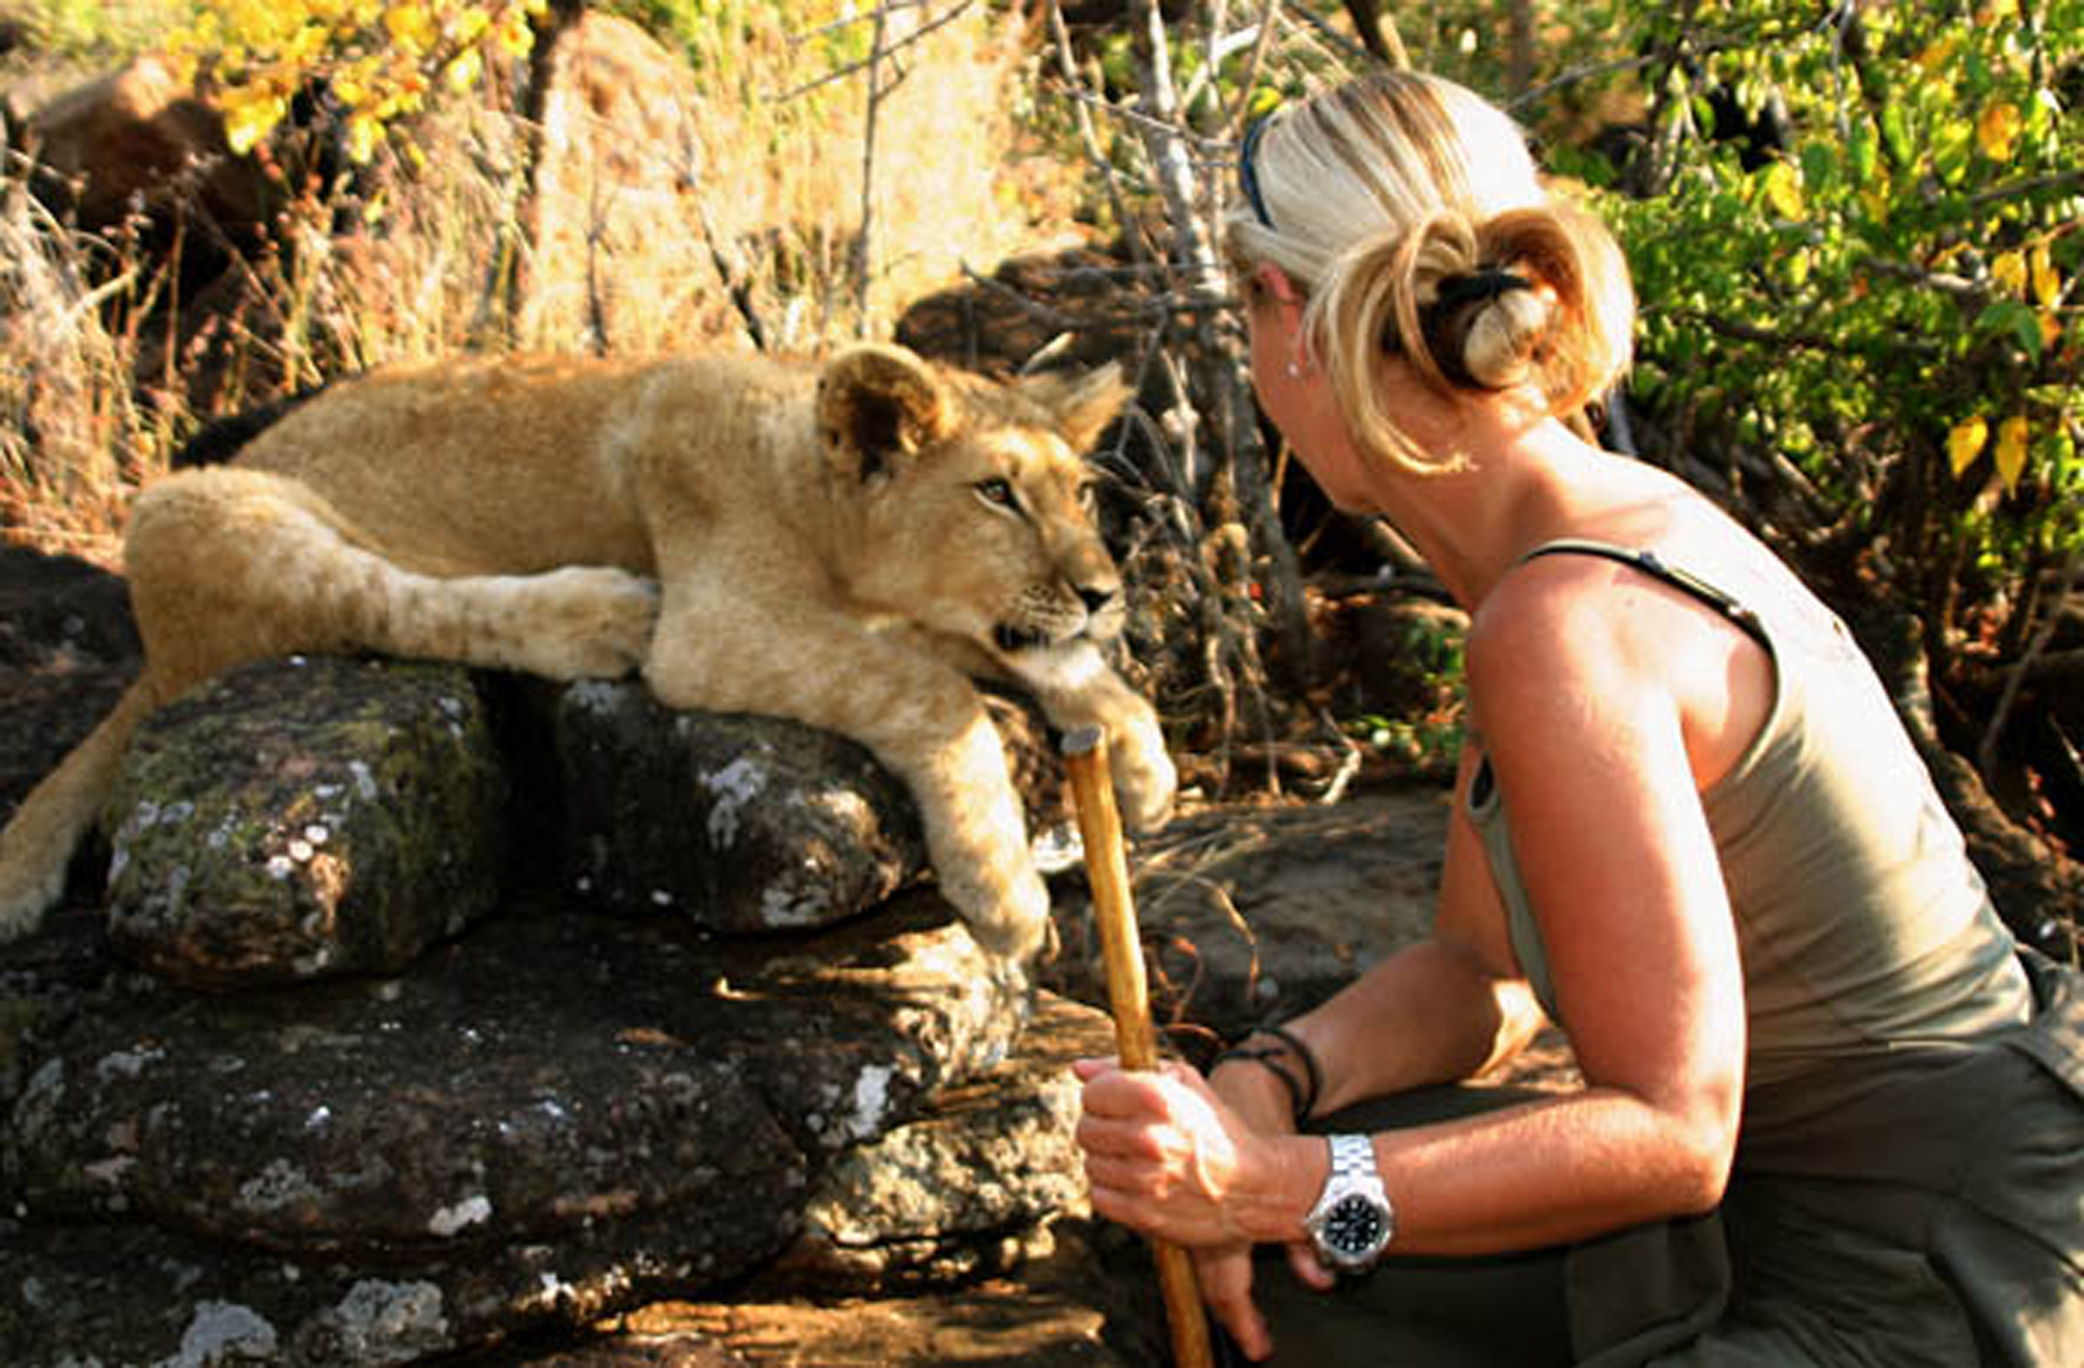 Up close and personal with the lions. Photo credit: Kaya Responsible Travel